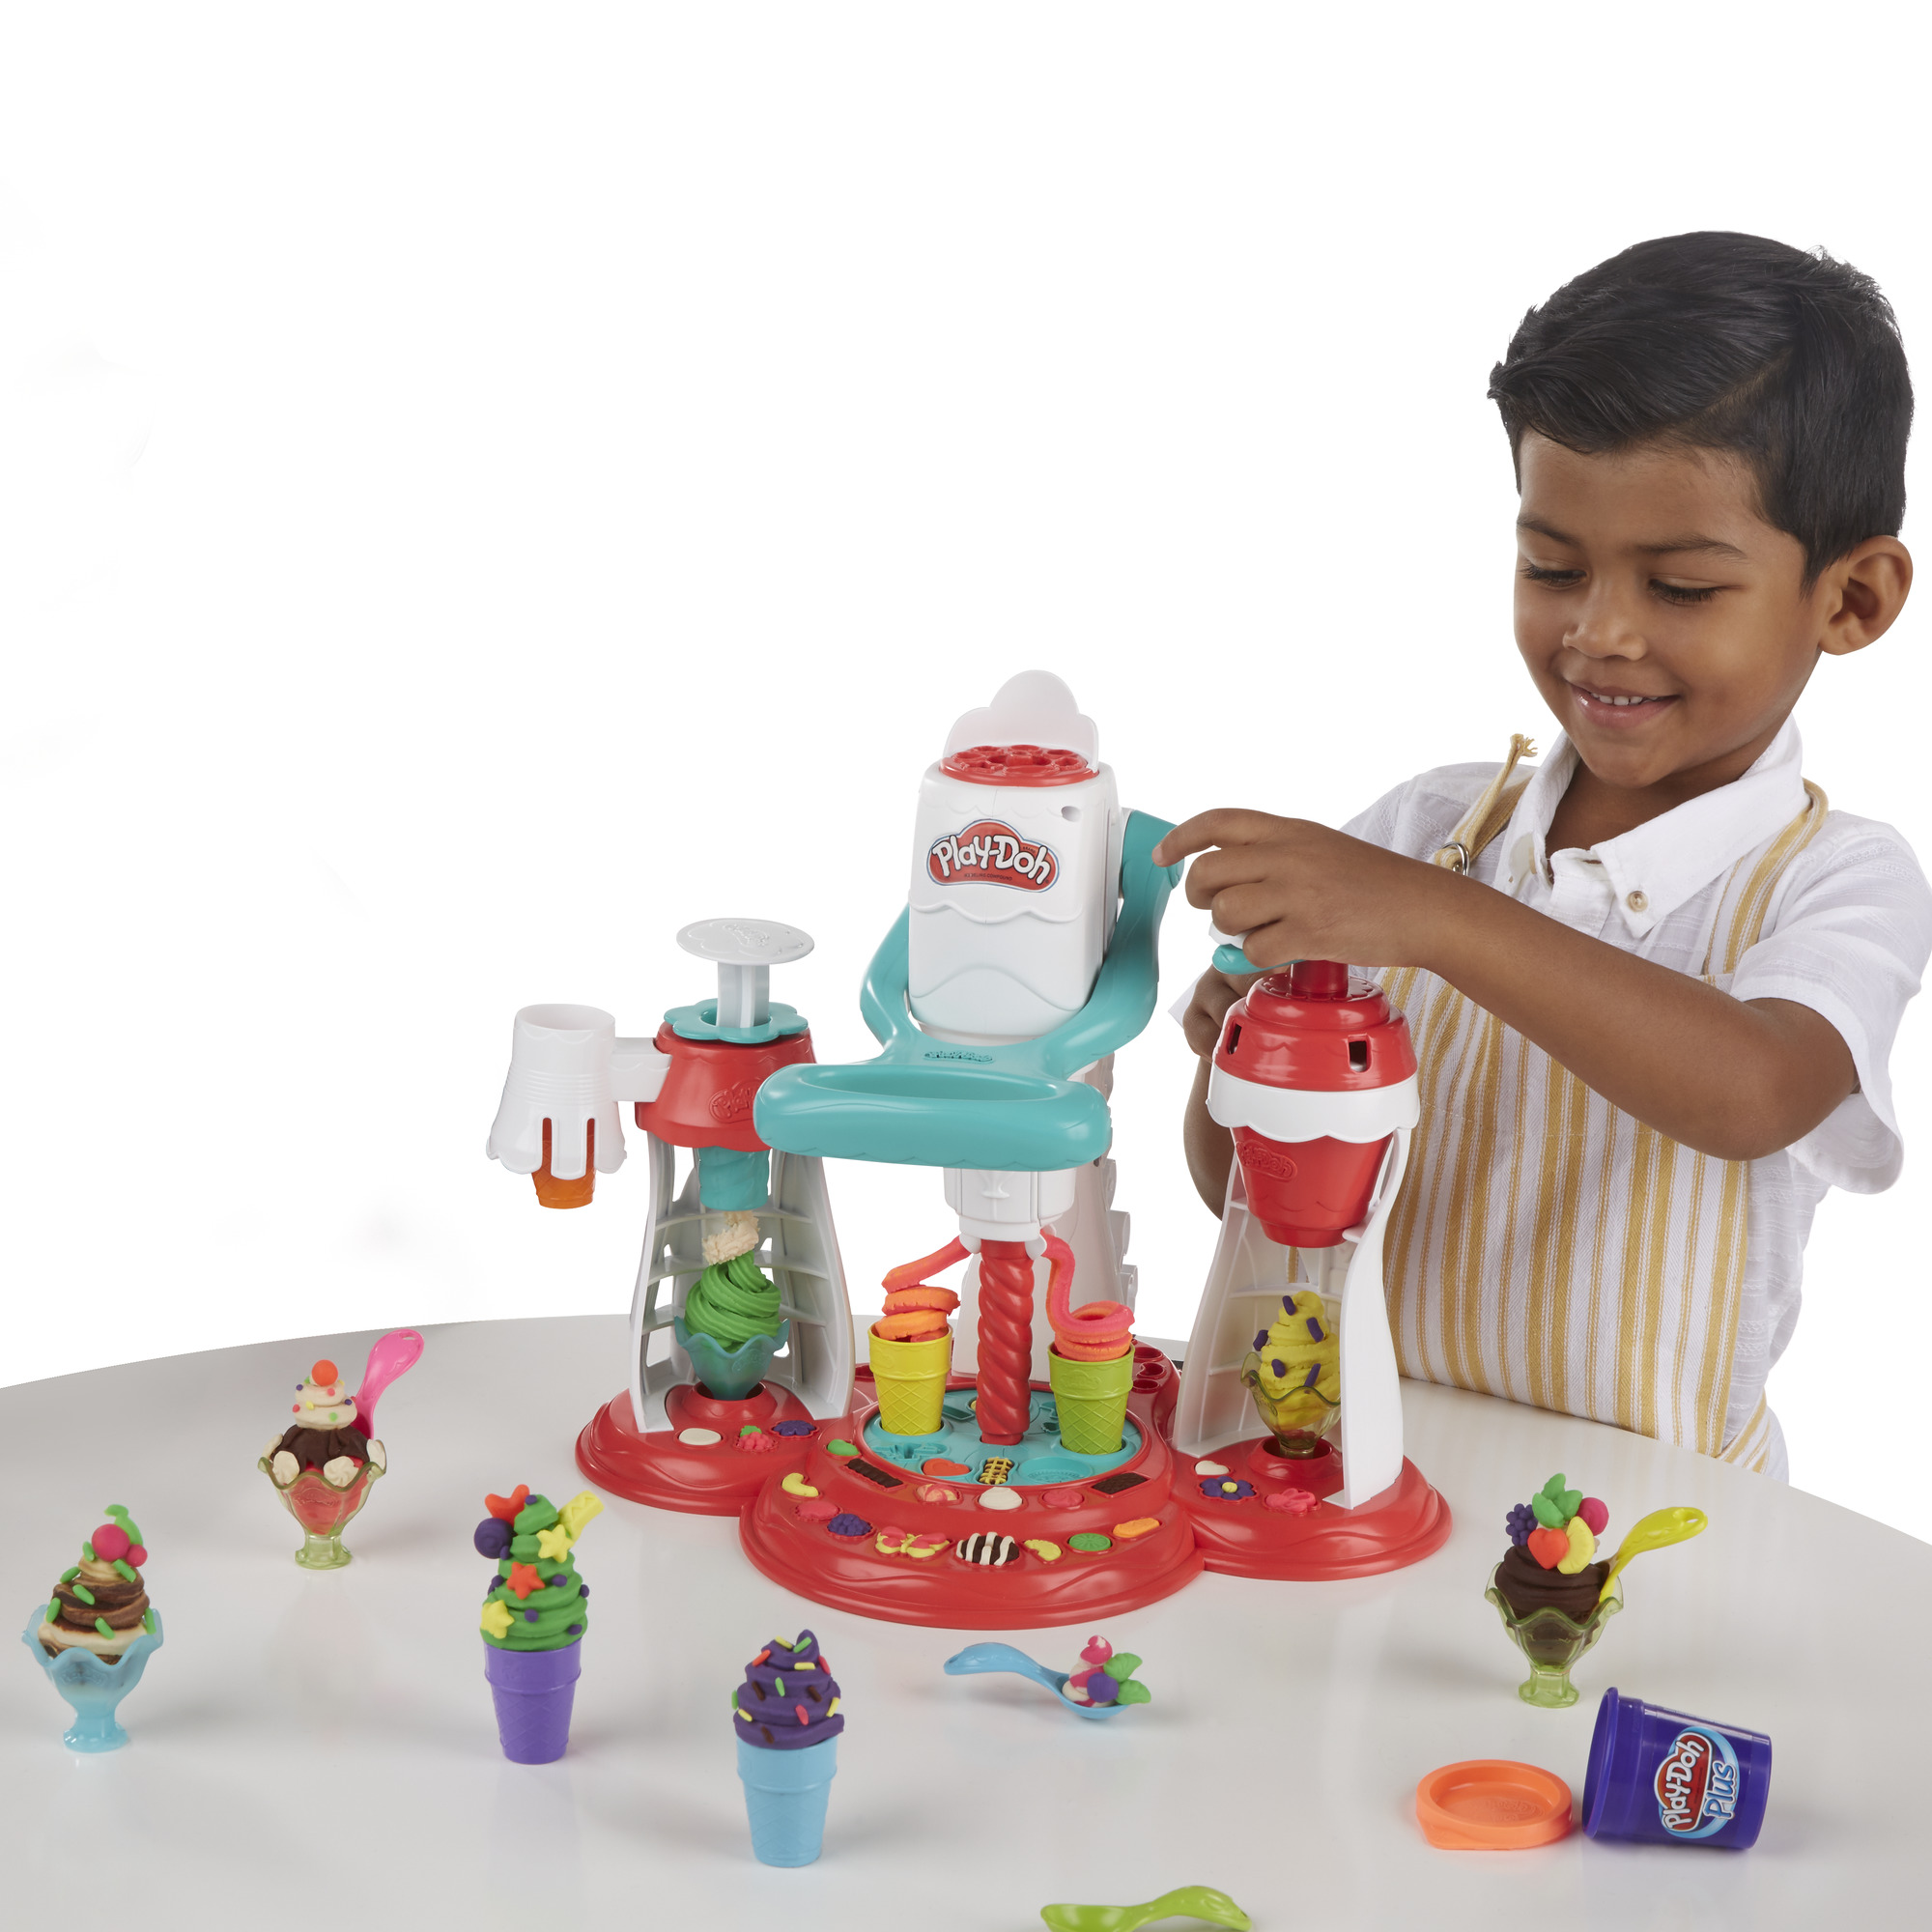 Play-Doh Kitchen Creations Ultimate Swirl n/' Scoop Ice Cream Maker Play Food